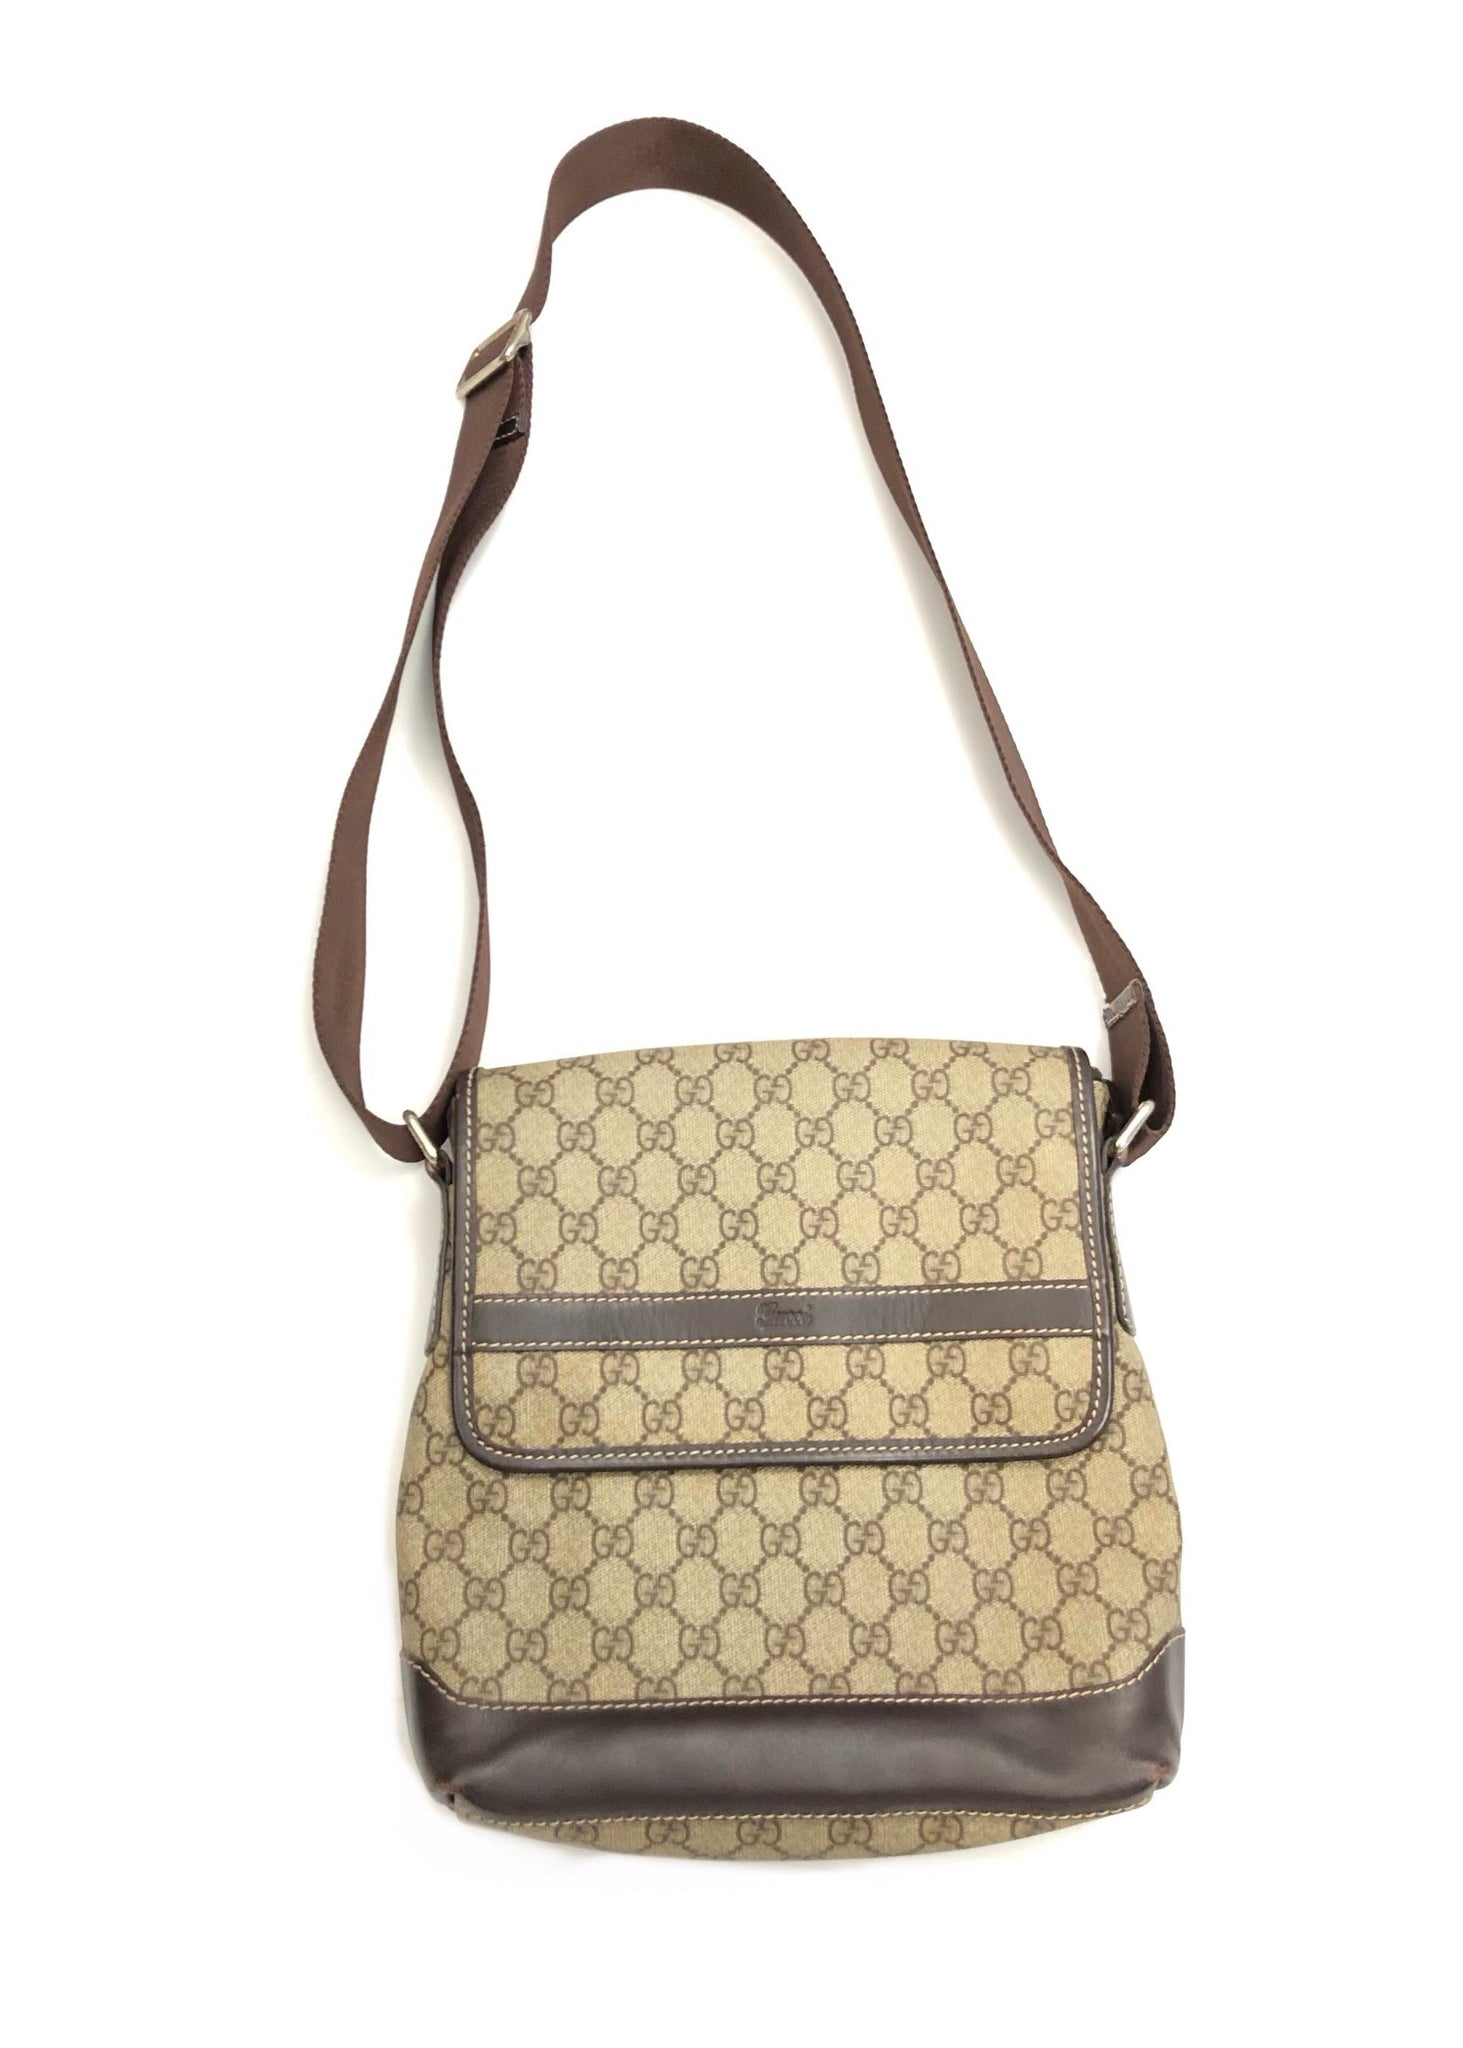 GUCCI MONOGRAM CROSSBODY BAG